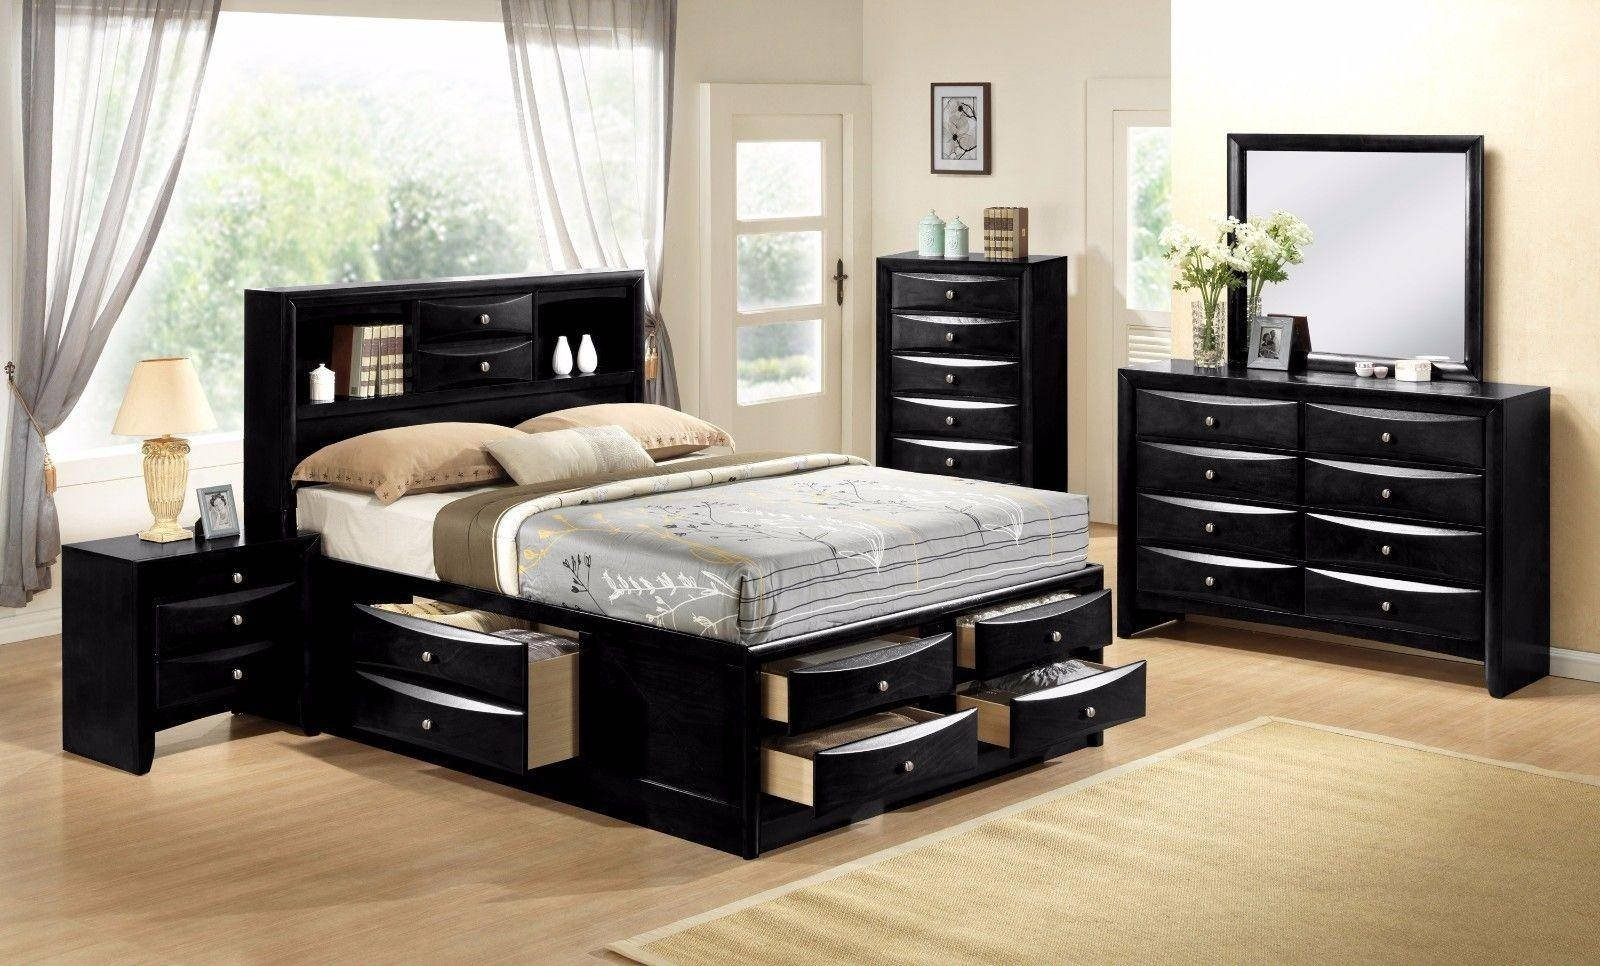 Full Size Bedroom Furniture Set Best Of Crown Mark B4285 Emily Modern Black Finish Storage King Size